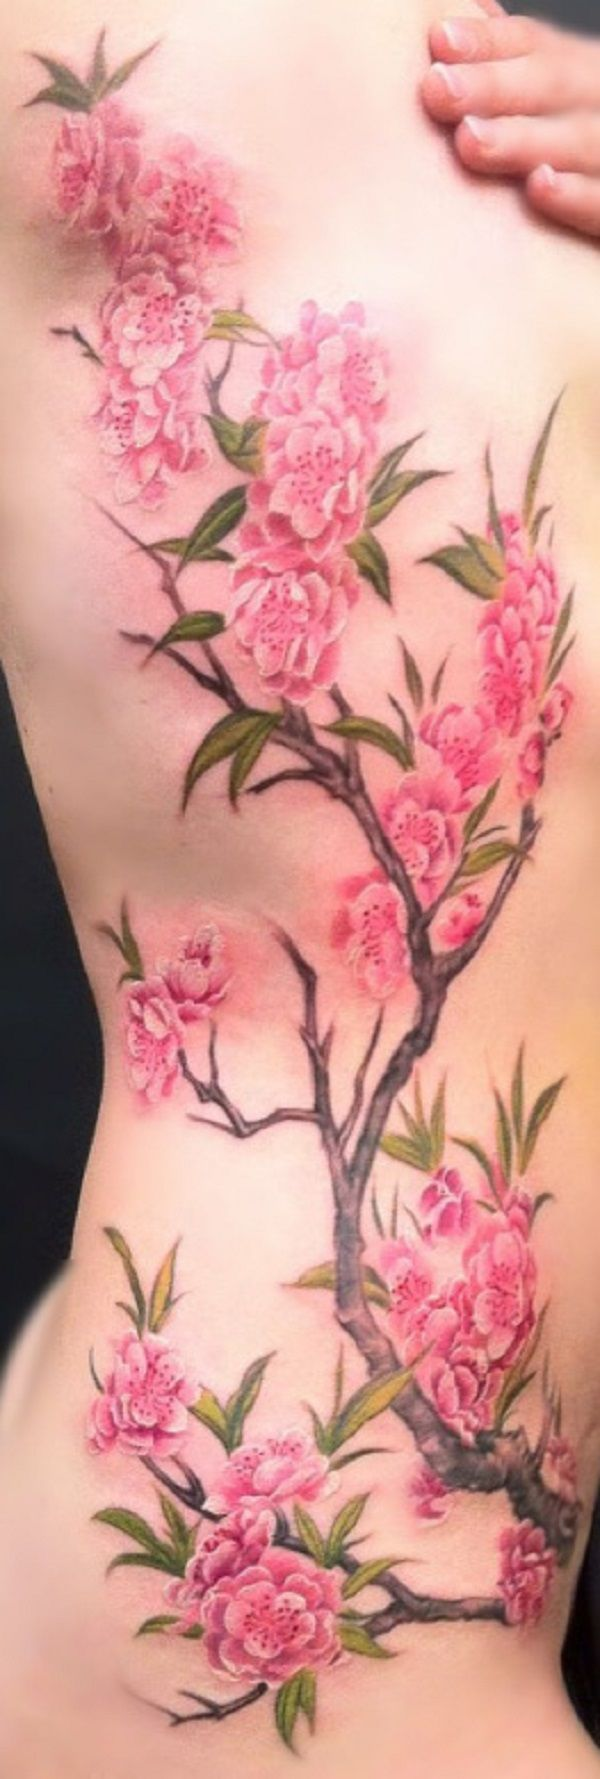 A really softly inked cherry blossom tattoo. You can almost feel the softness of...